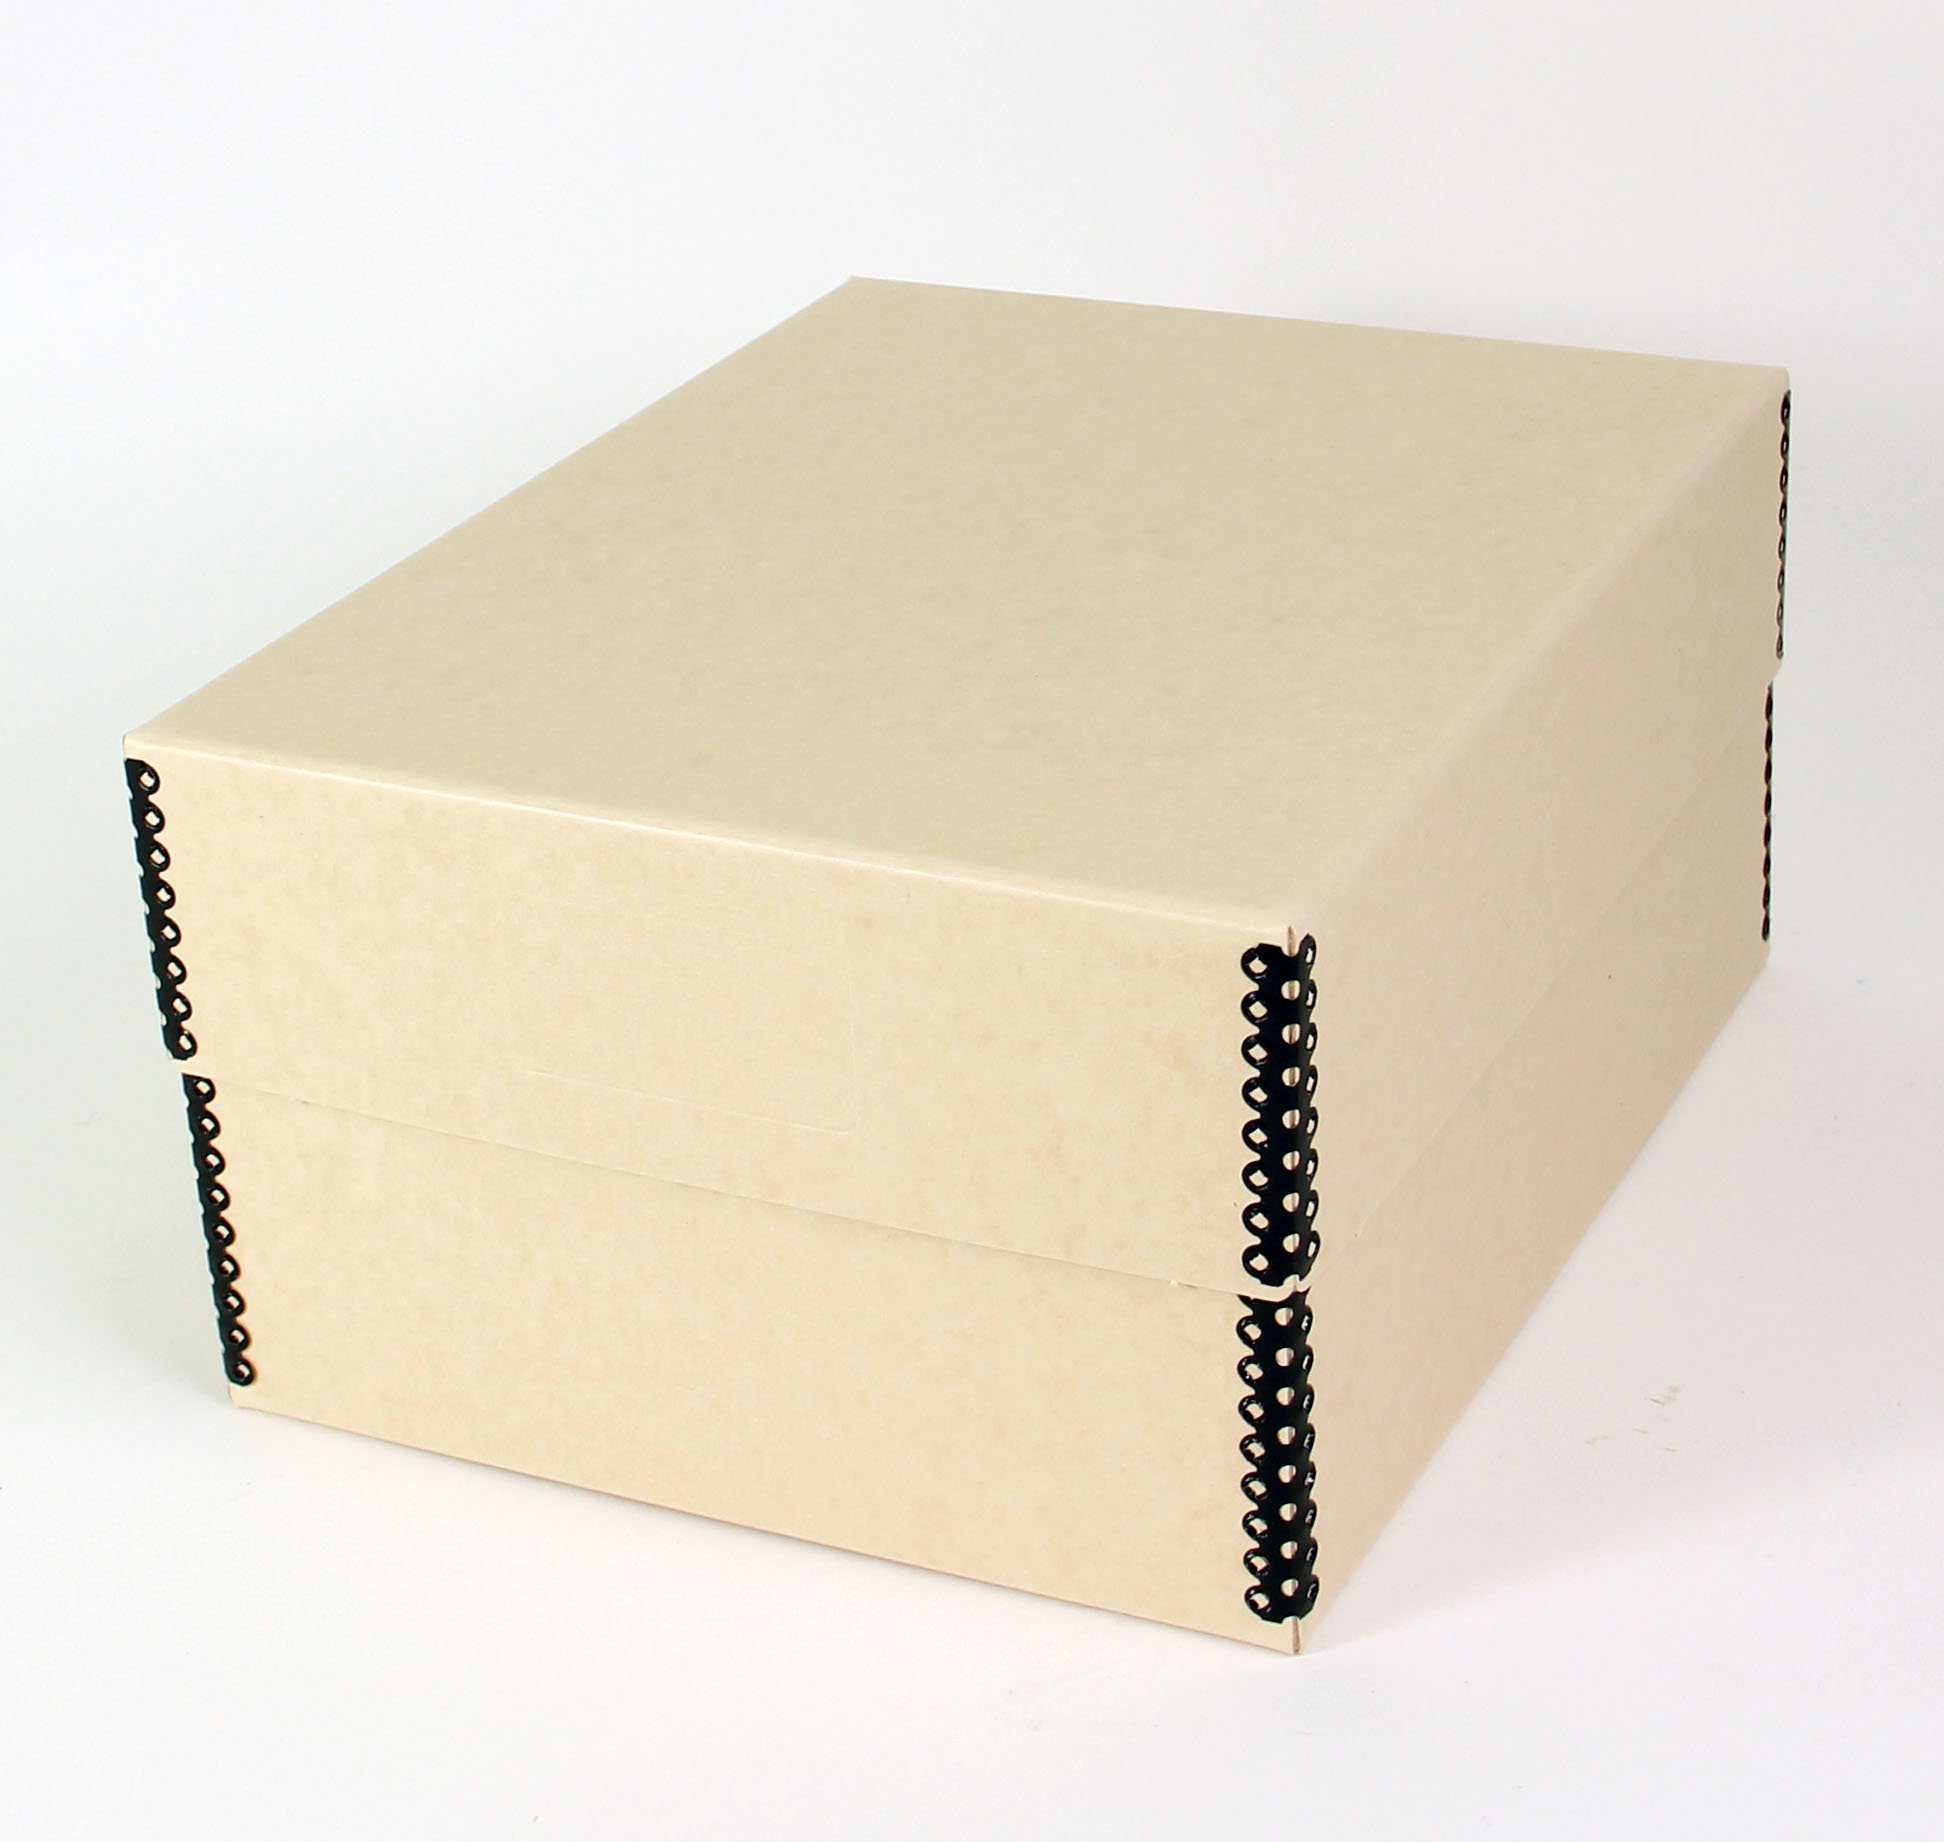 Short Top Box 10.5'' x 8.2'' - Container For Safe Storage of Post Cards and Photographic Prints